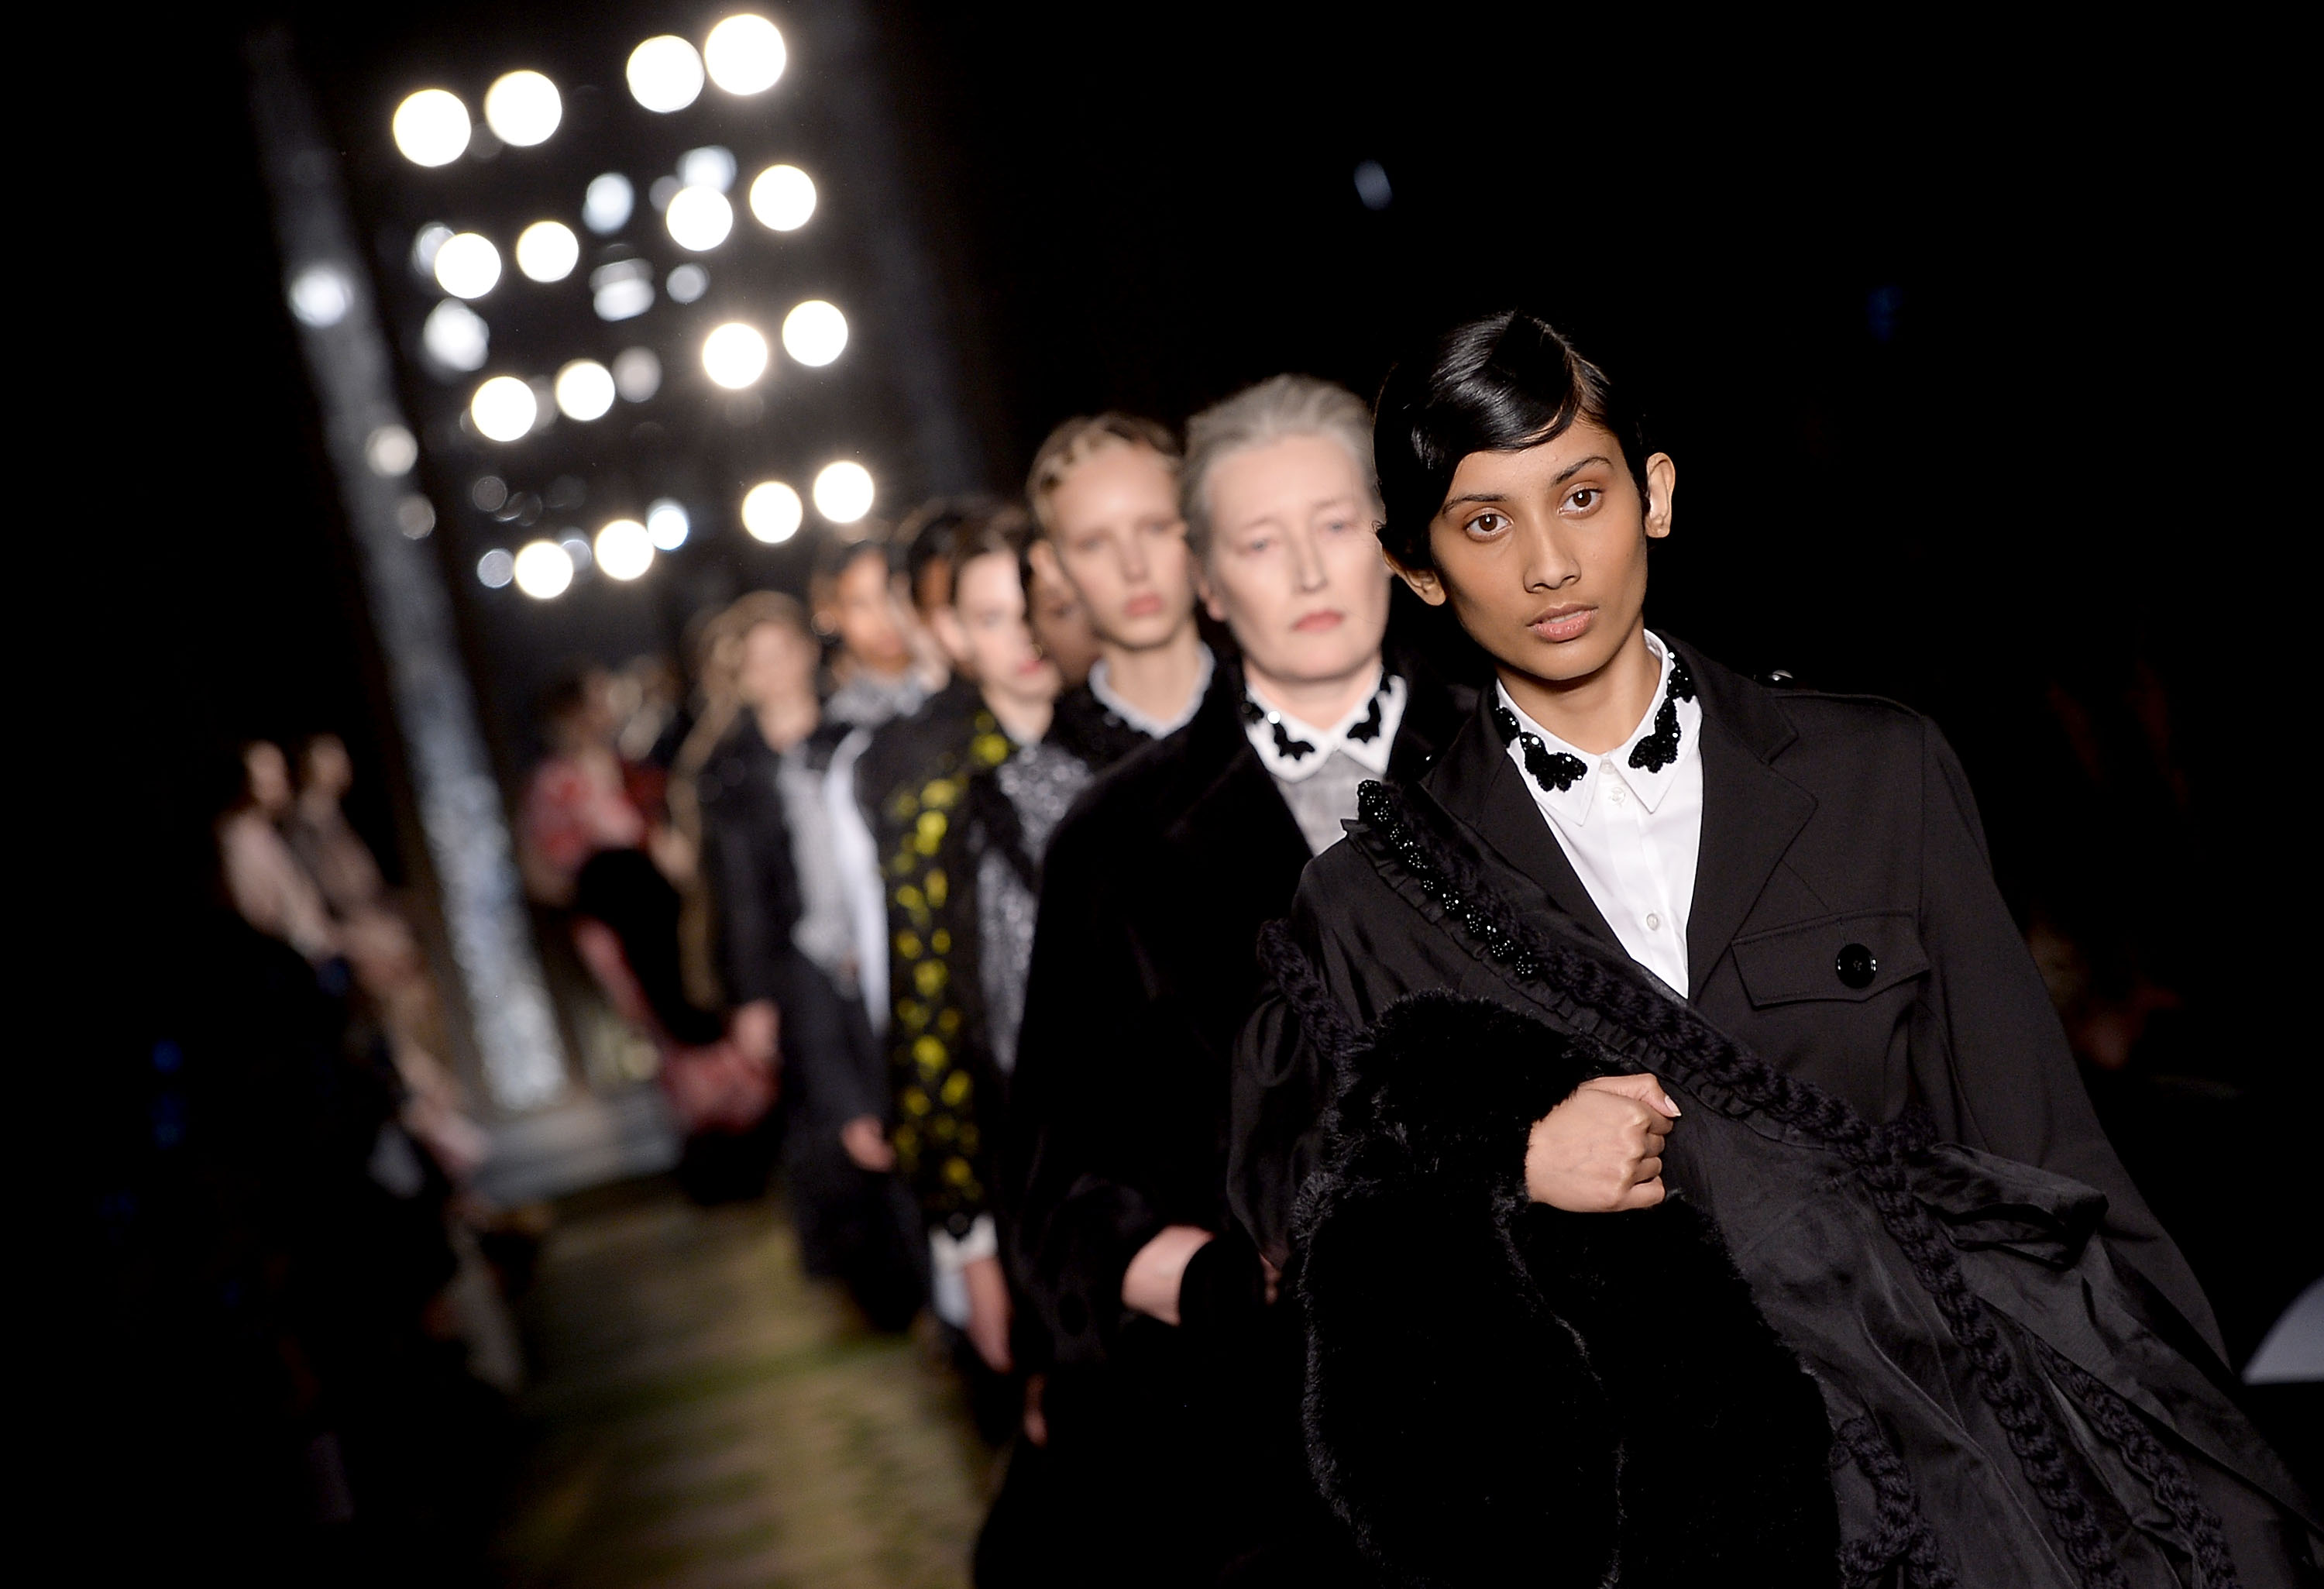 Simone Rocha cast models of all ages at London Fashion Week, because beauty doesn't retire